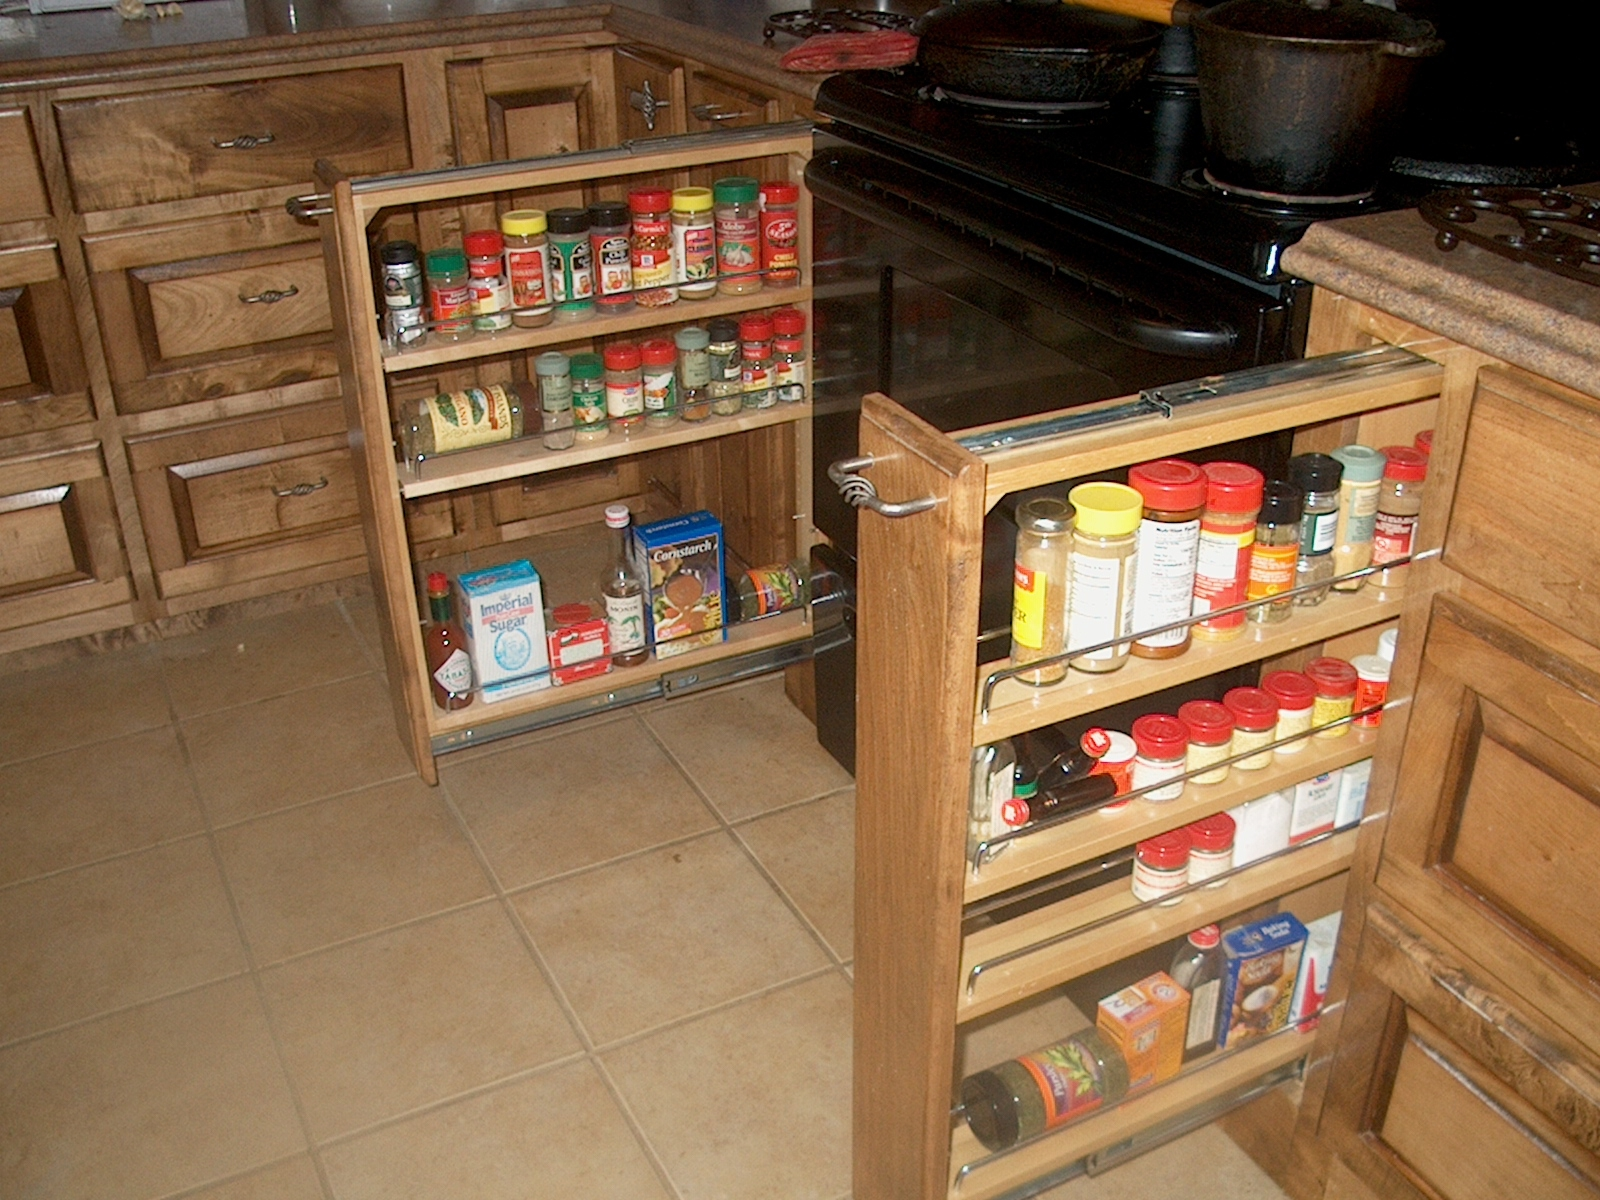 Kitchen Sliding Spice Rack For Nice Kitchen Cabinet Design In Storage Racks For Kitchen Cupboards (Image 18 of 25)